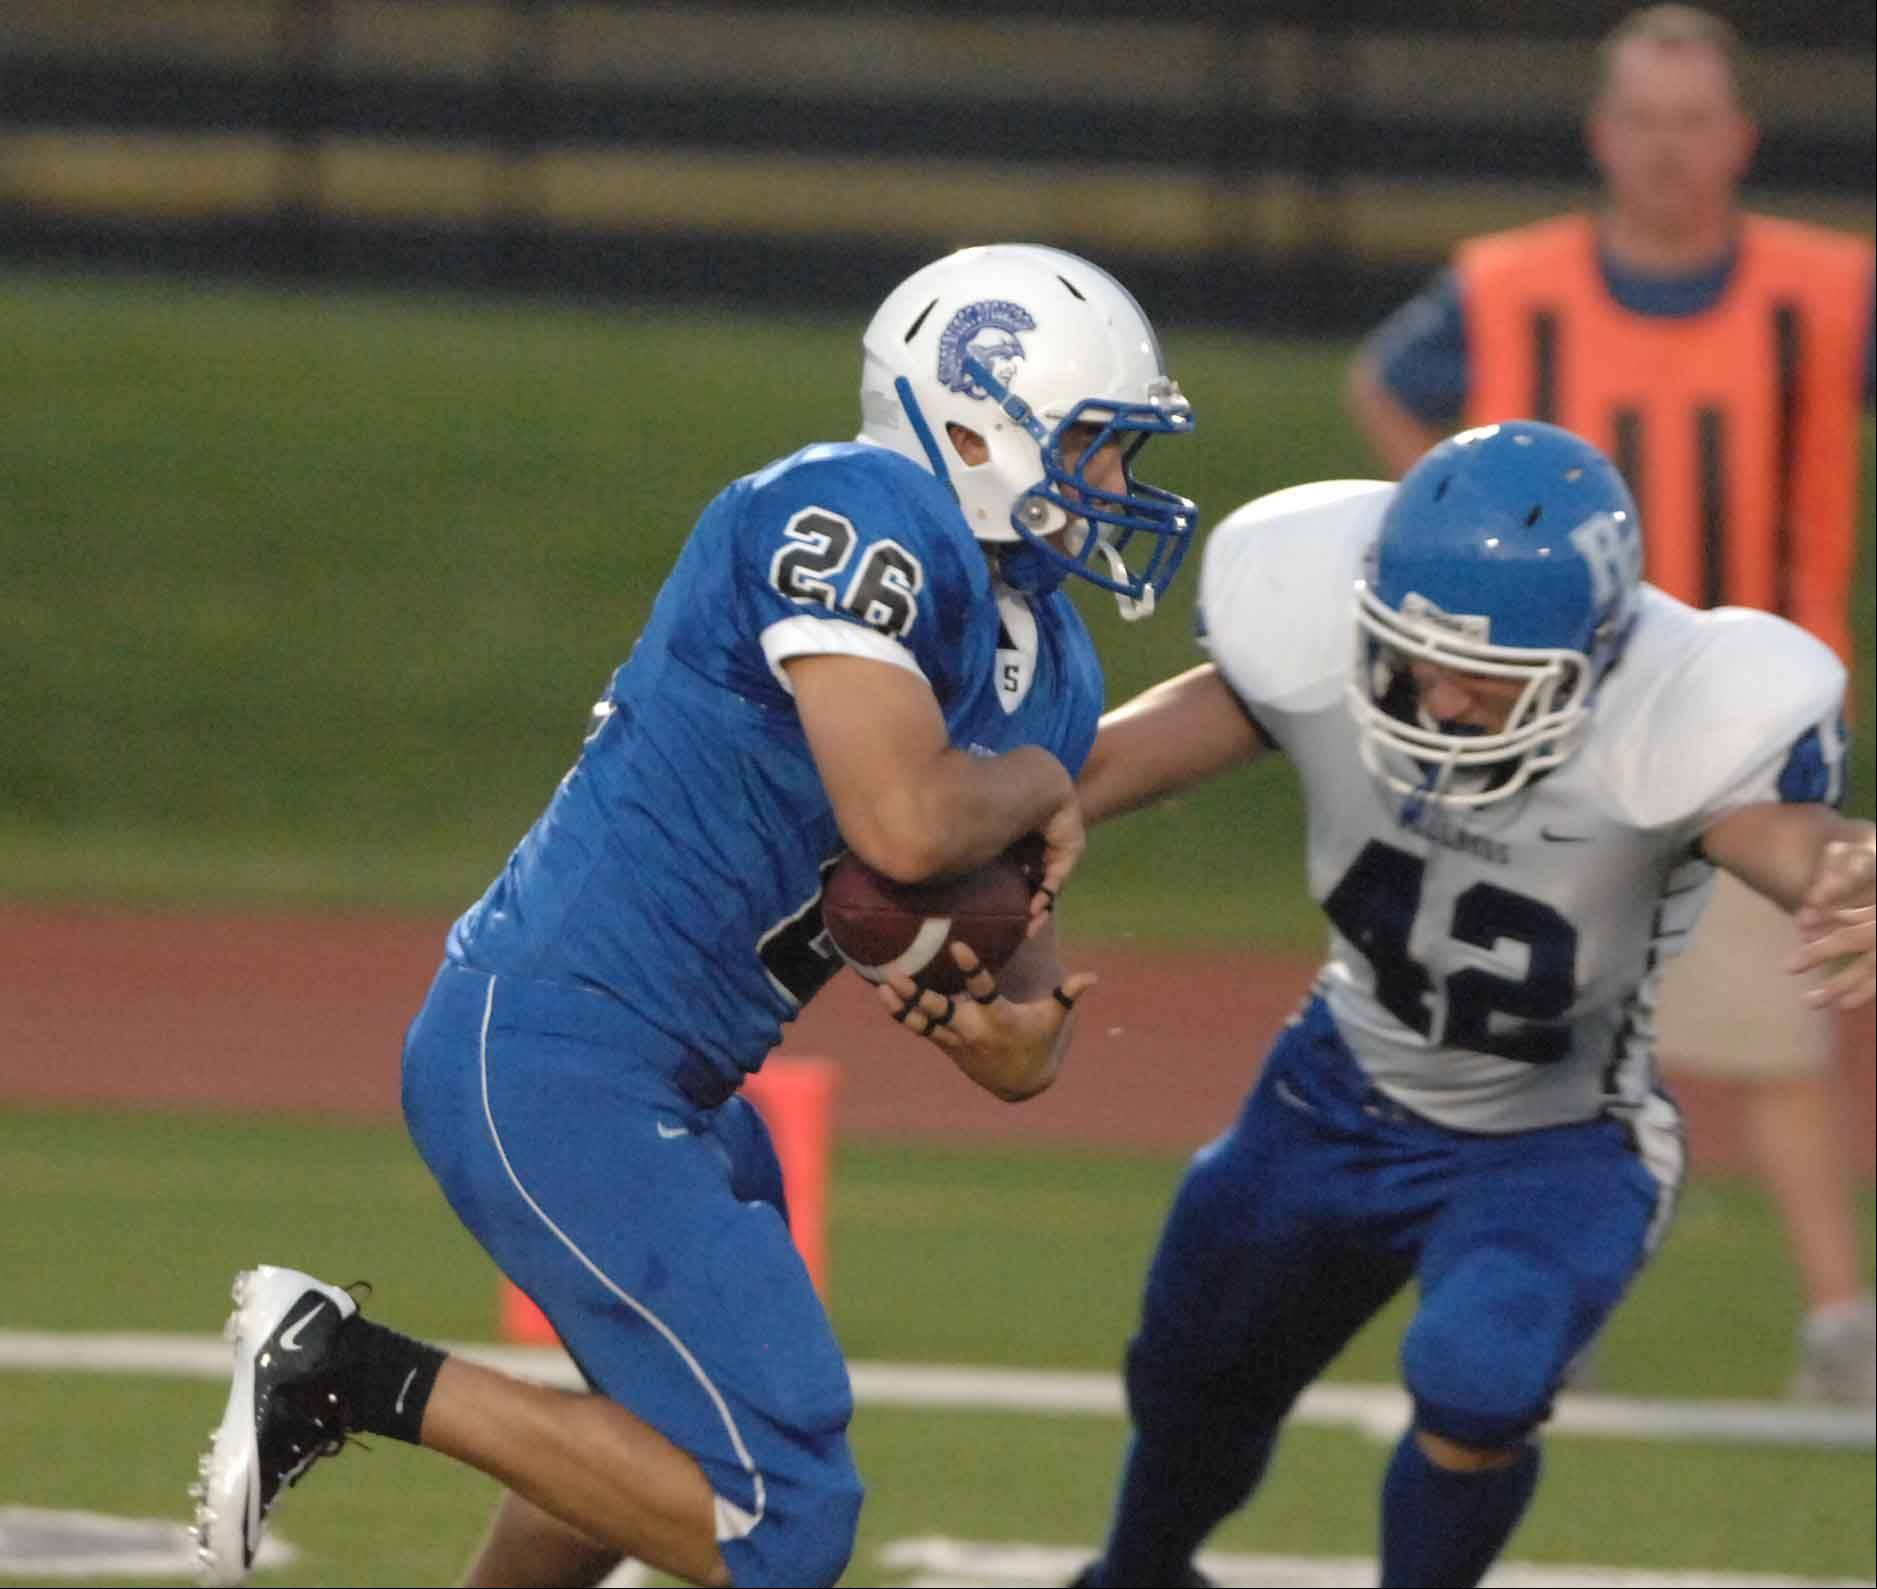 Week 1- Jack Petrando of St. Francis moves the ball against Riverside-Brookfield.